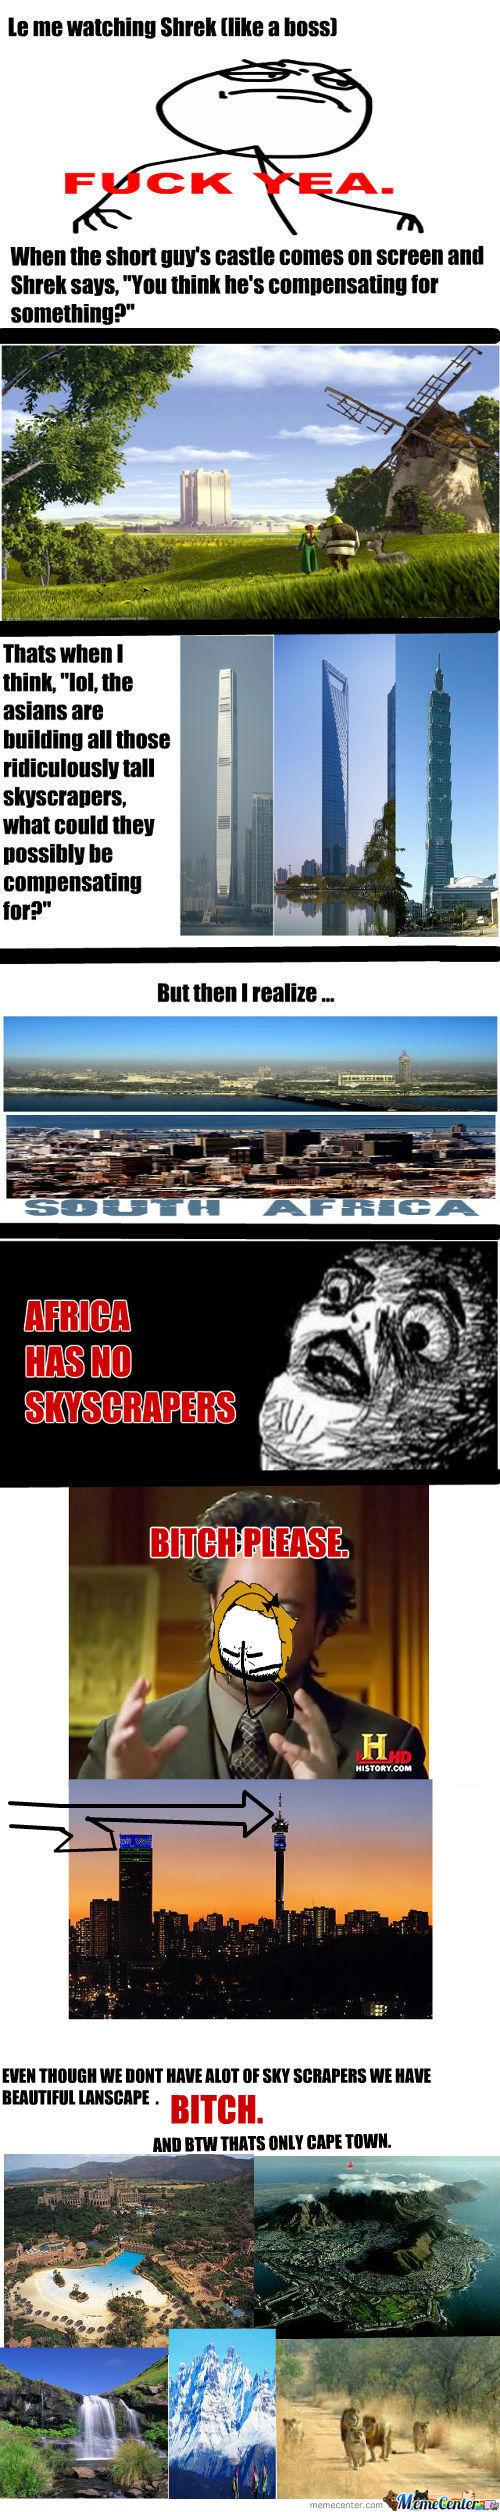 [RMX] Why Africa Has No Skyscrapers (Besides How They're Poor As Shit)